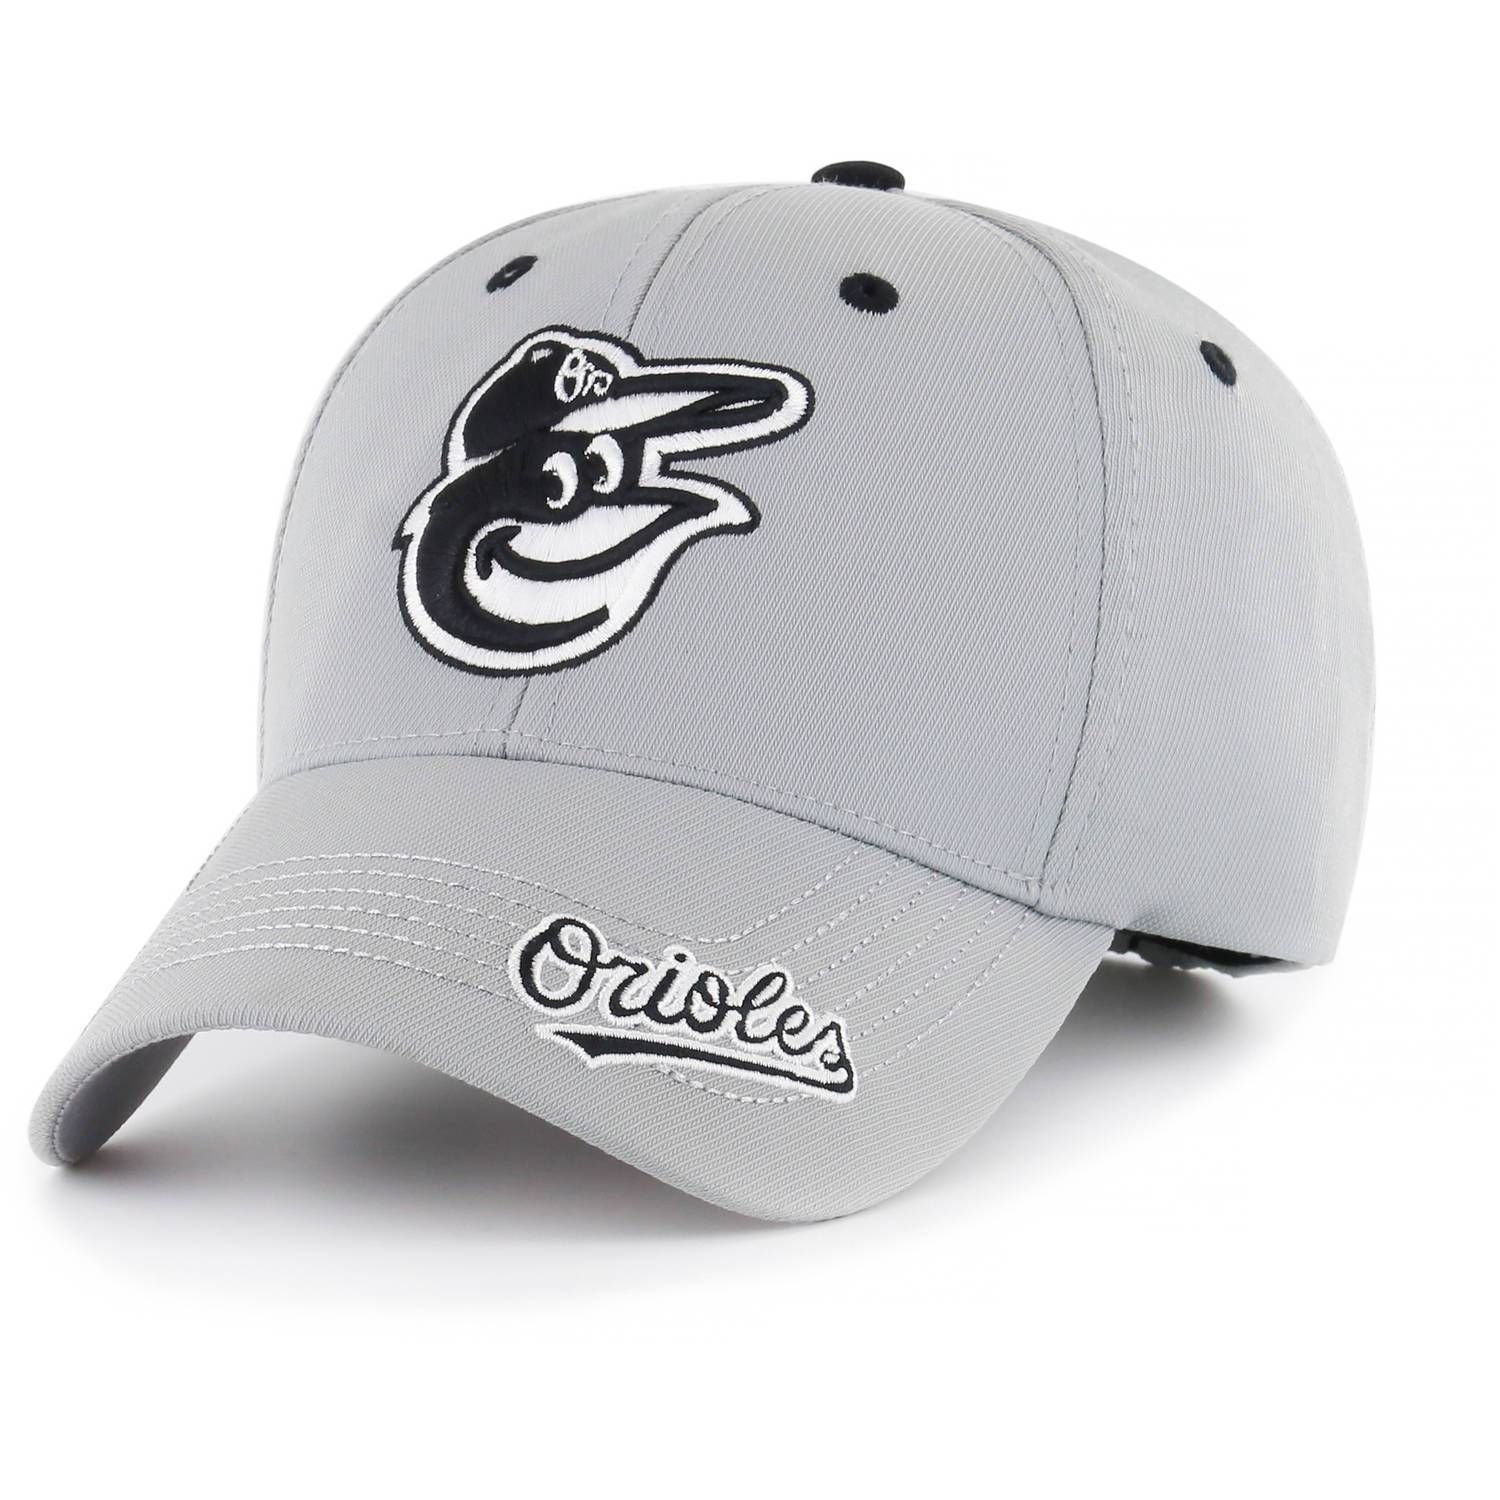 108020b72f9 Baltimore Orioles MLB Baseball Cap   Hat - Grey in 2019